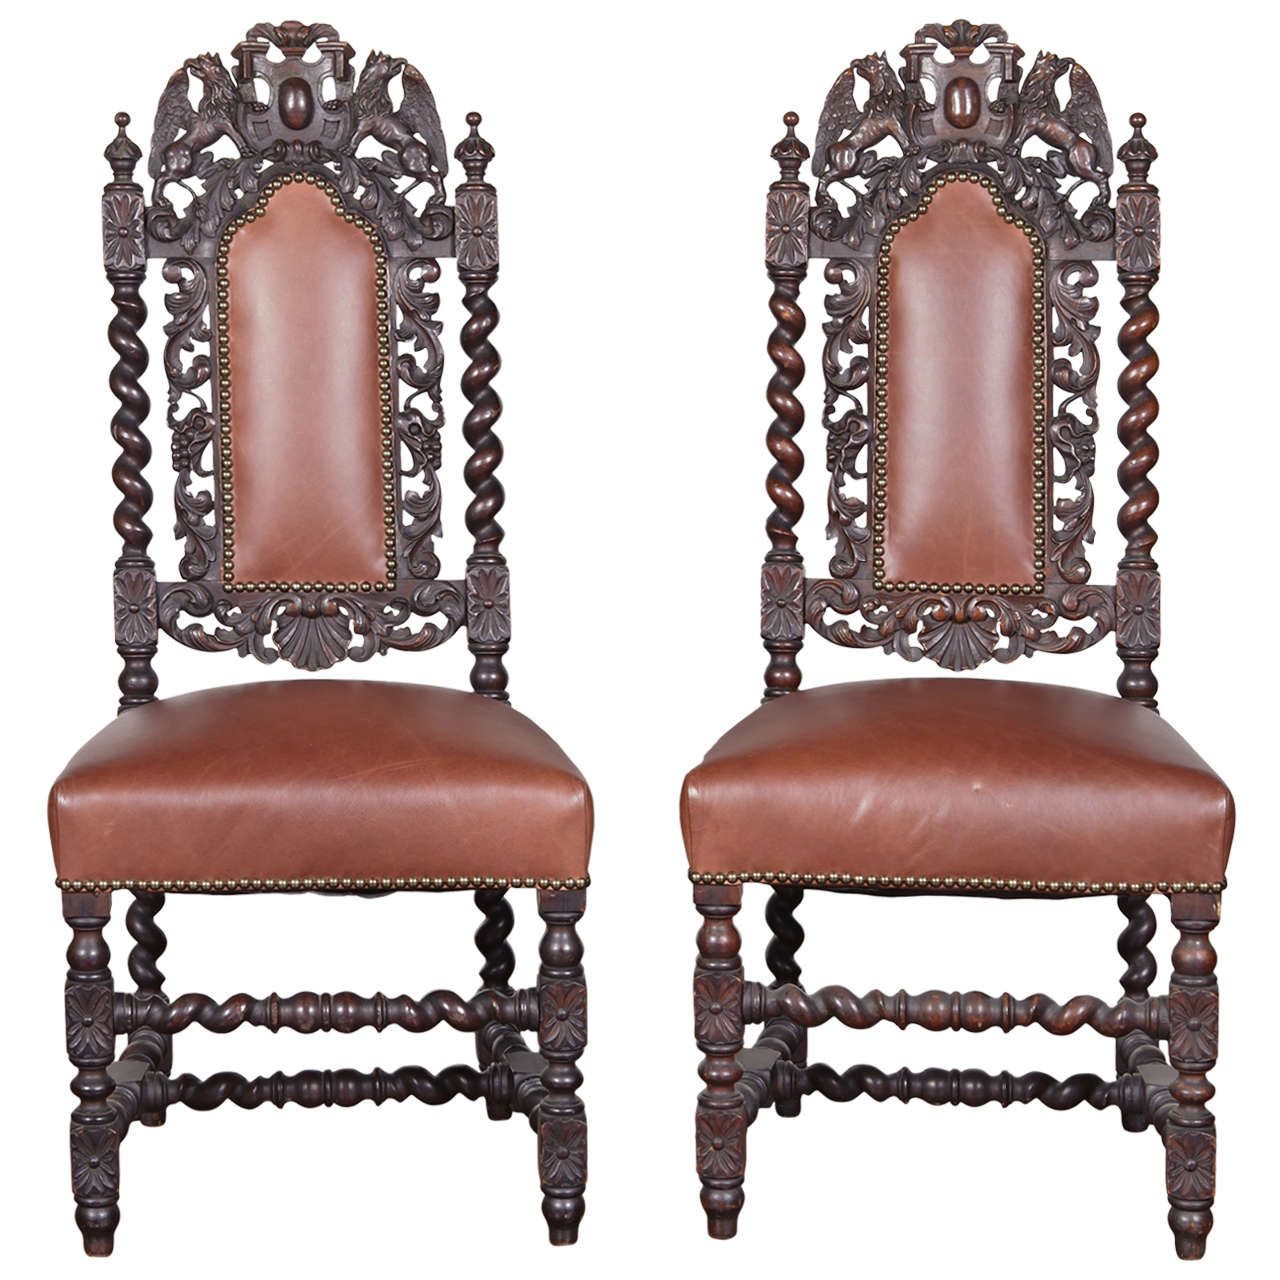 Pair Of Spanish Baroque Style Side Chairs   From A Unique Collection Of  Antique And Modern Side Chairs At ...